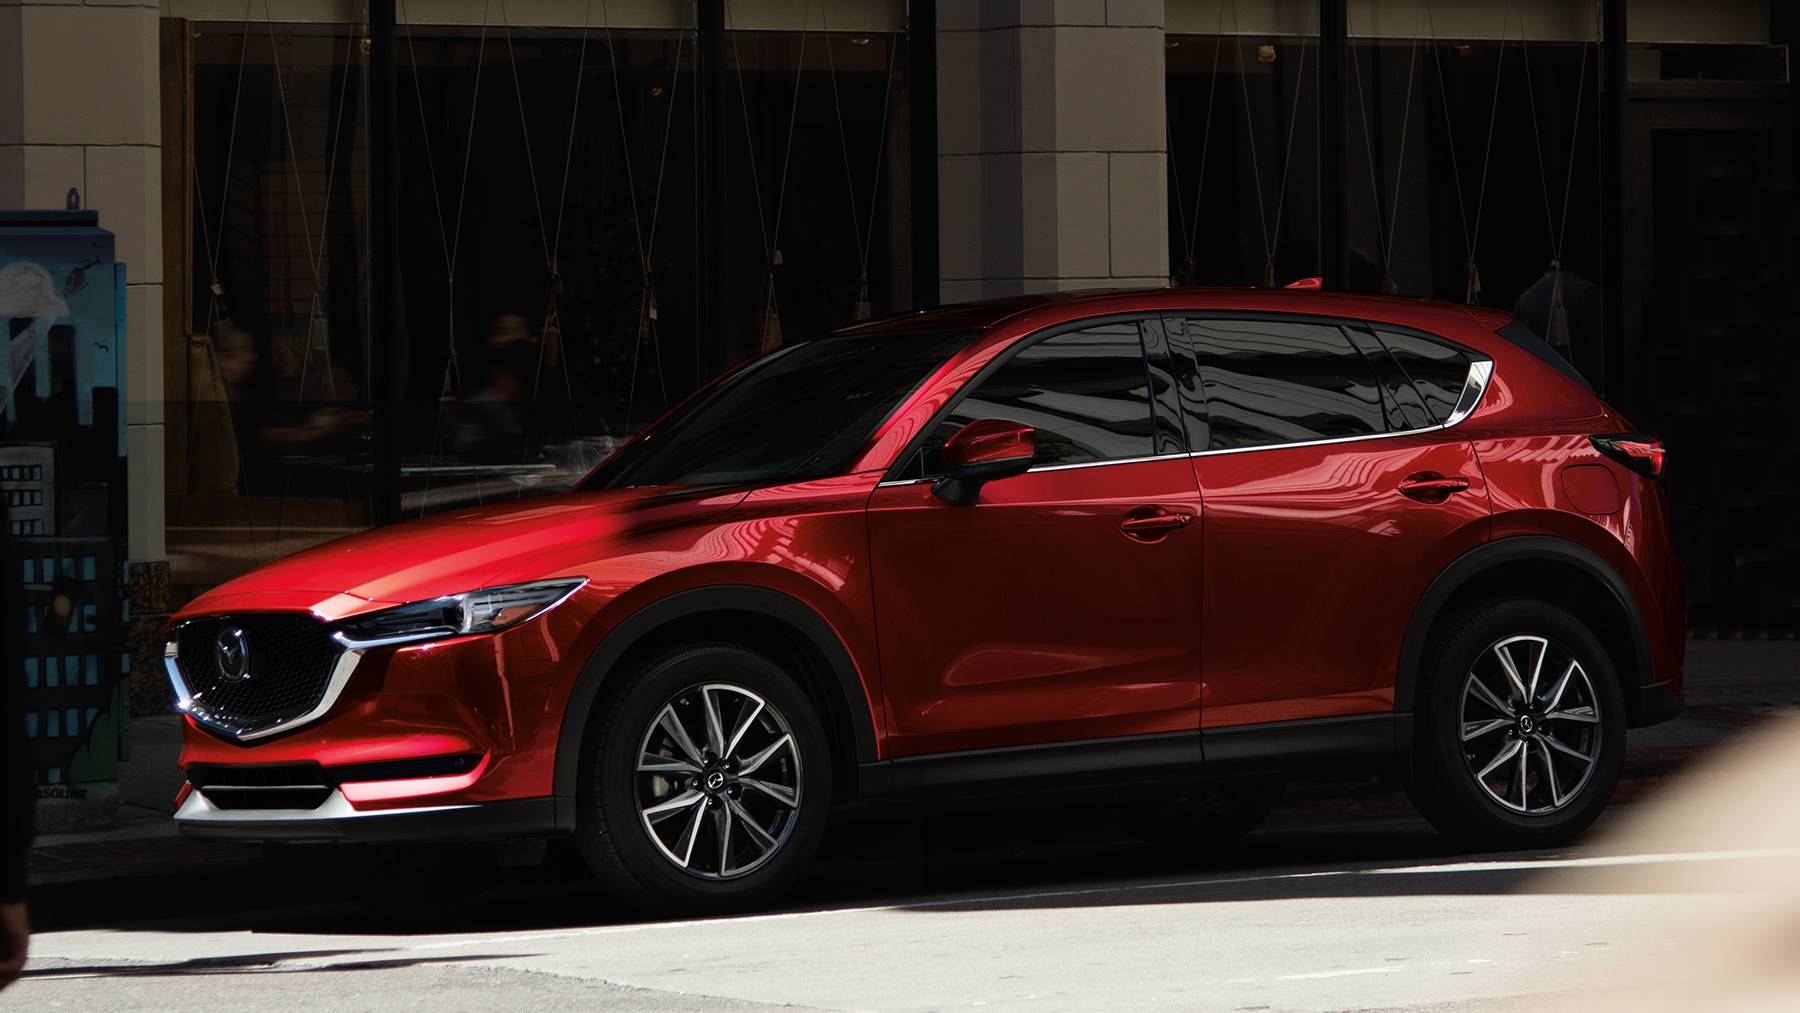 2018 Mazda CX-5 Financing in San Antonio, TX